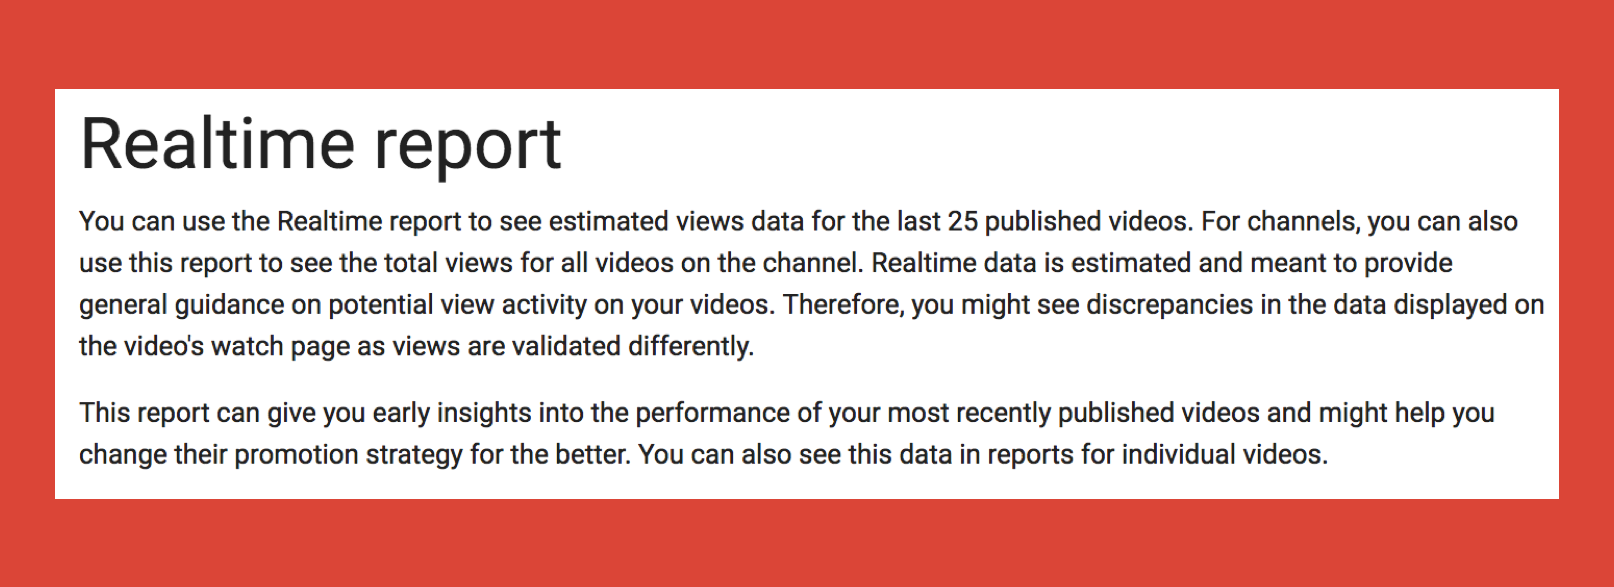 The Youtube Reporting Api Kevin Urban Dont Quote Me On This View However Realtime Is Less Useful For A Media Company That Releases 15 50 Videos Every Day Thus Scraping Which I Covered In Several